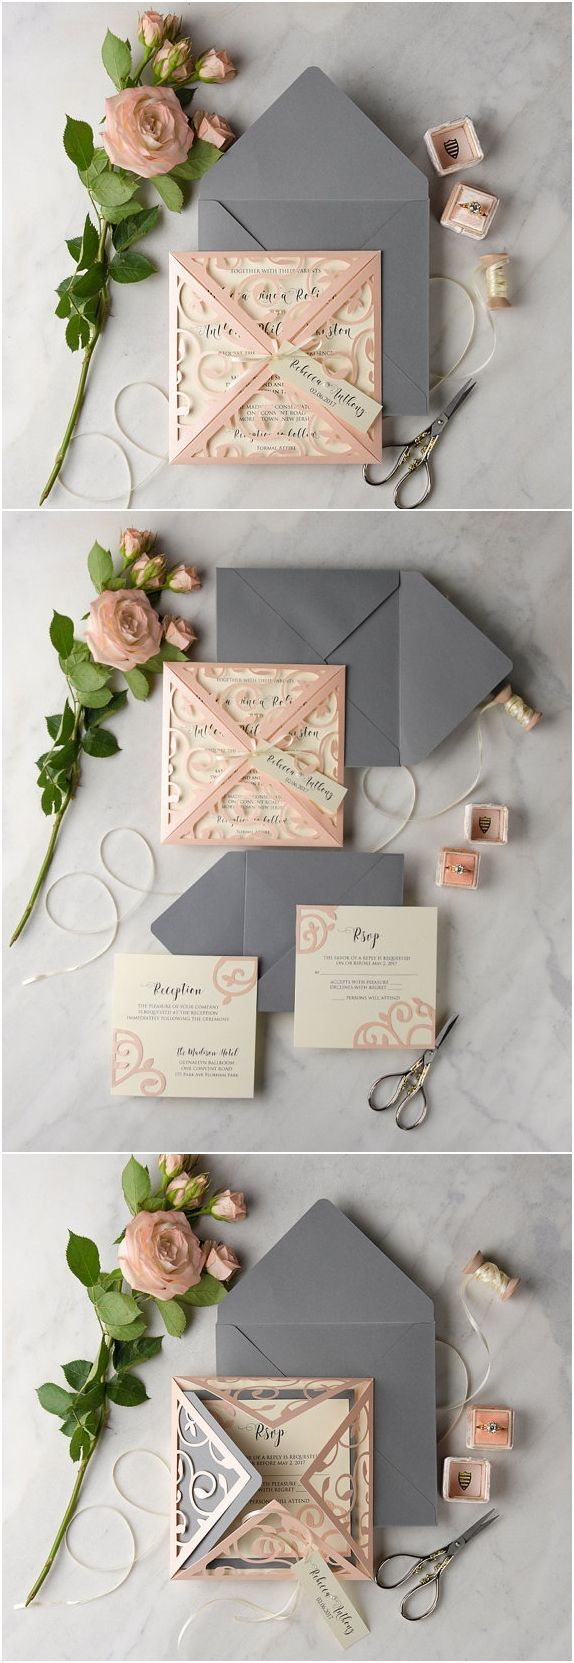 Marina and rishi rich wedding invitations